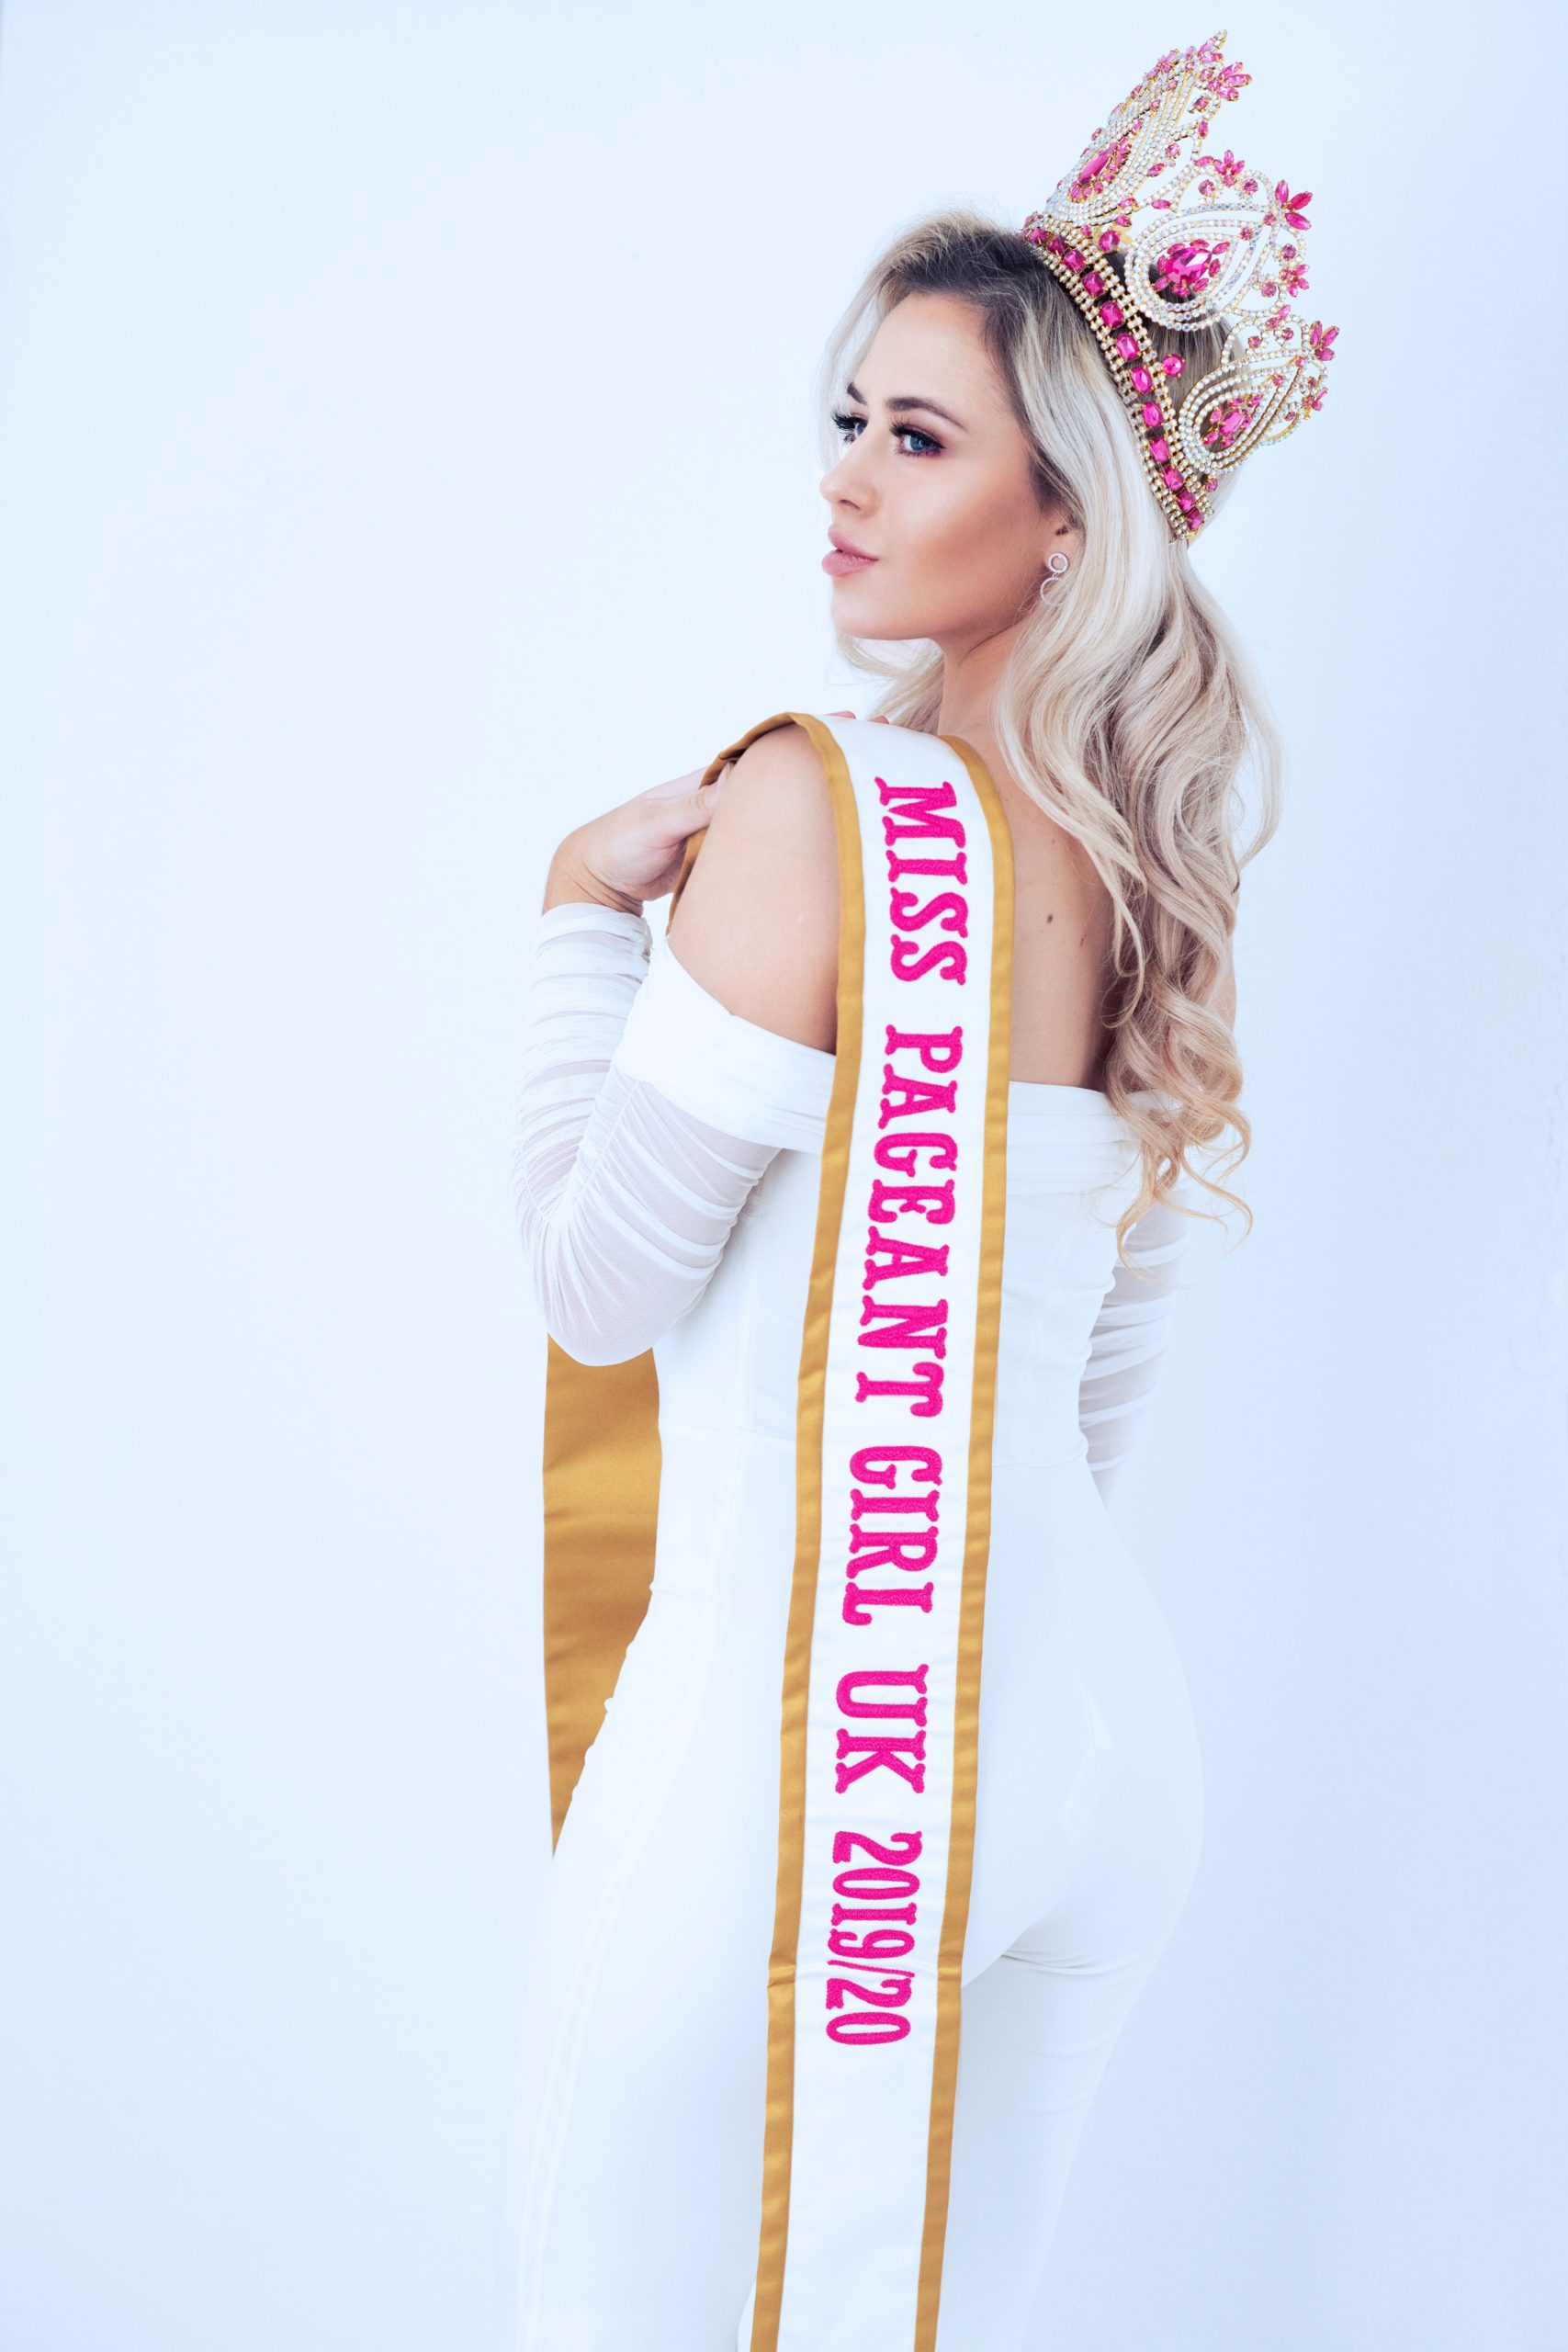 Miss Pageant Girl - Eden McAllister